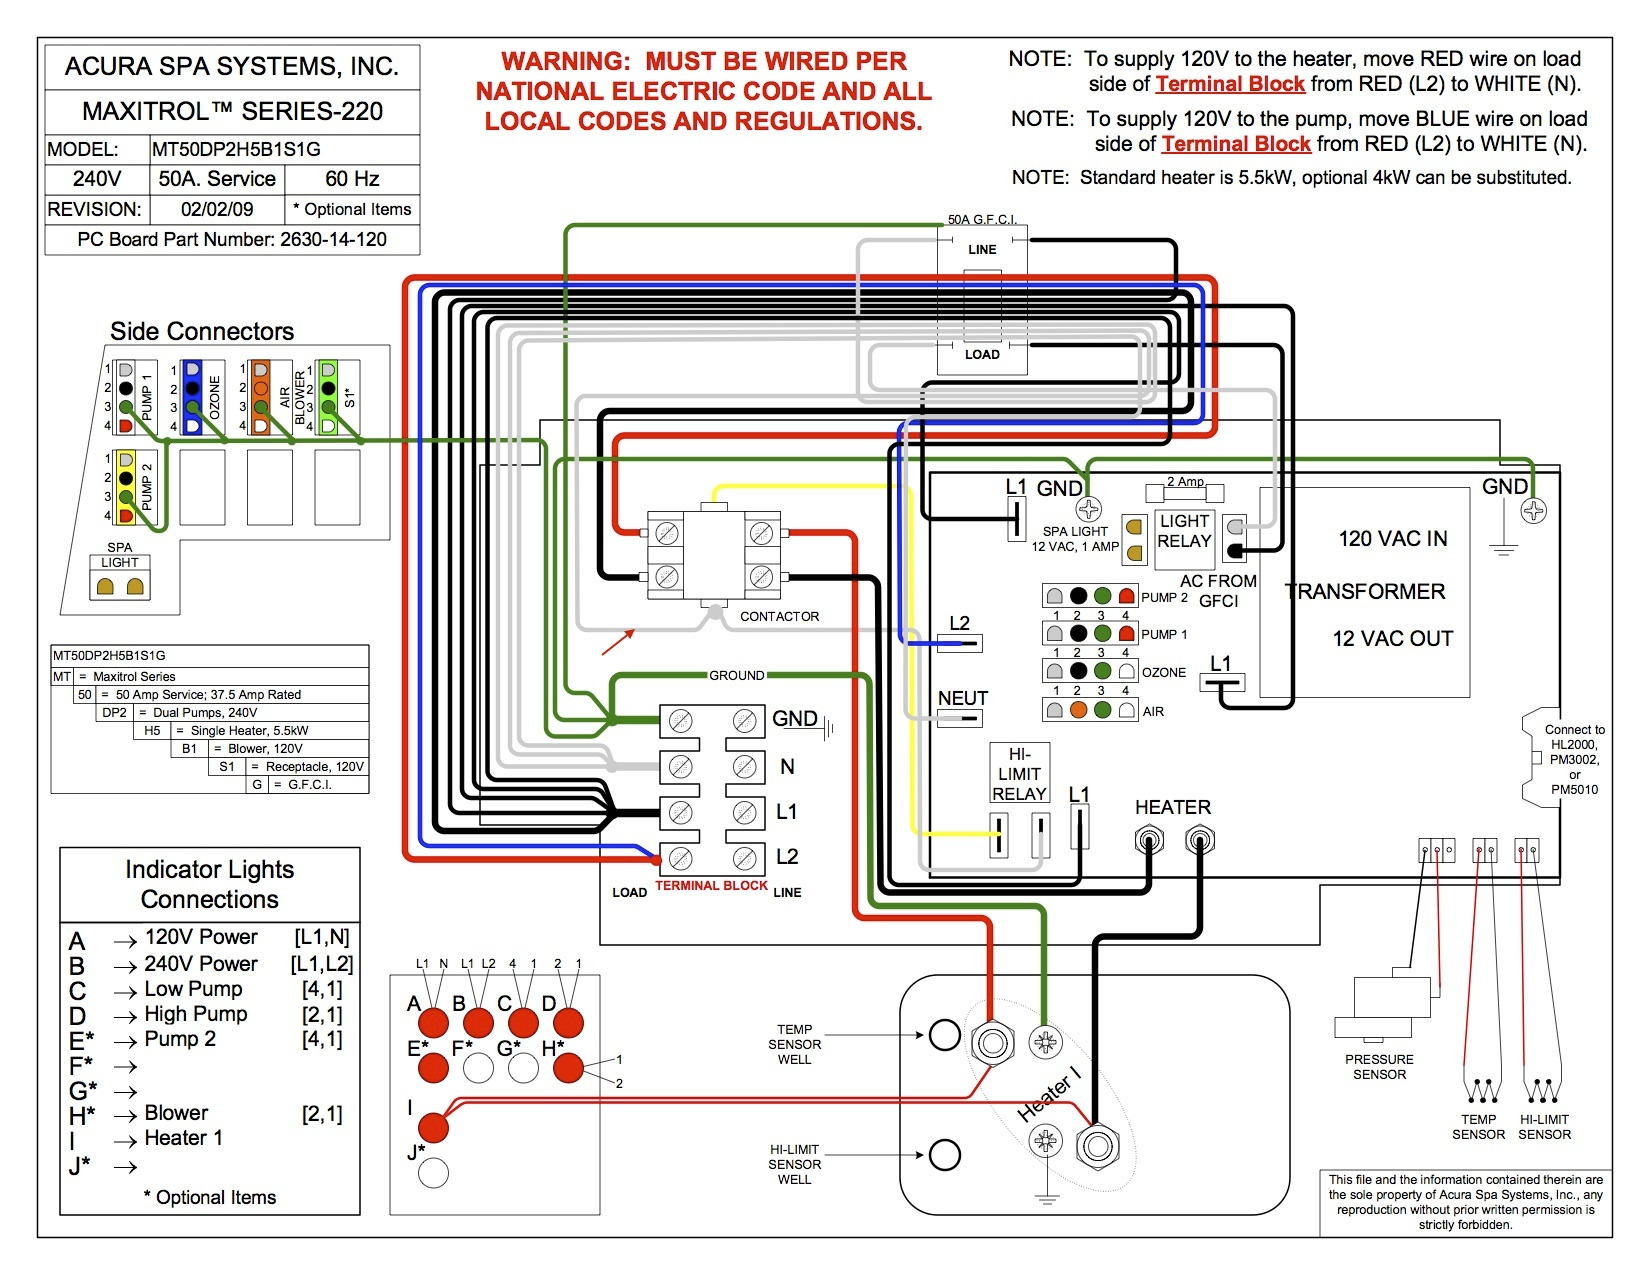 E21D0 WRG-6273] Emerson Jacuzzi Wiring Schematics | Digital ... on 3 phase wiring for dummies, basic harley wiring diagram, air compressor electrical diagram, 3 phase motor wiring, 220 volt single phase motor wiring diagram, 3 phase electric generators, 3 phase breaker diagram, a c compressor diagram,